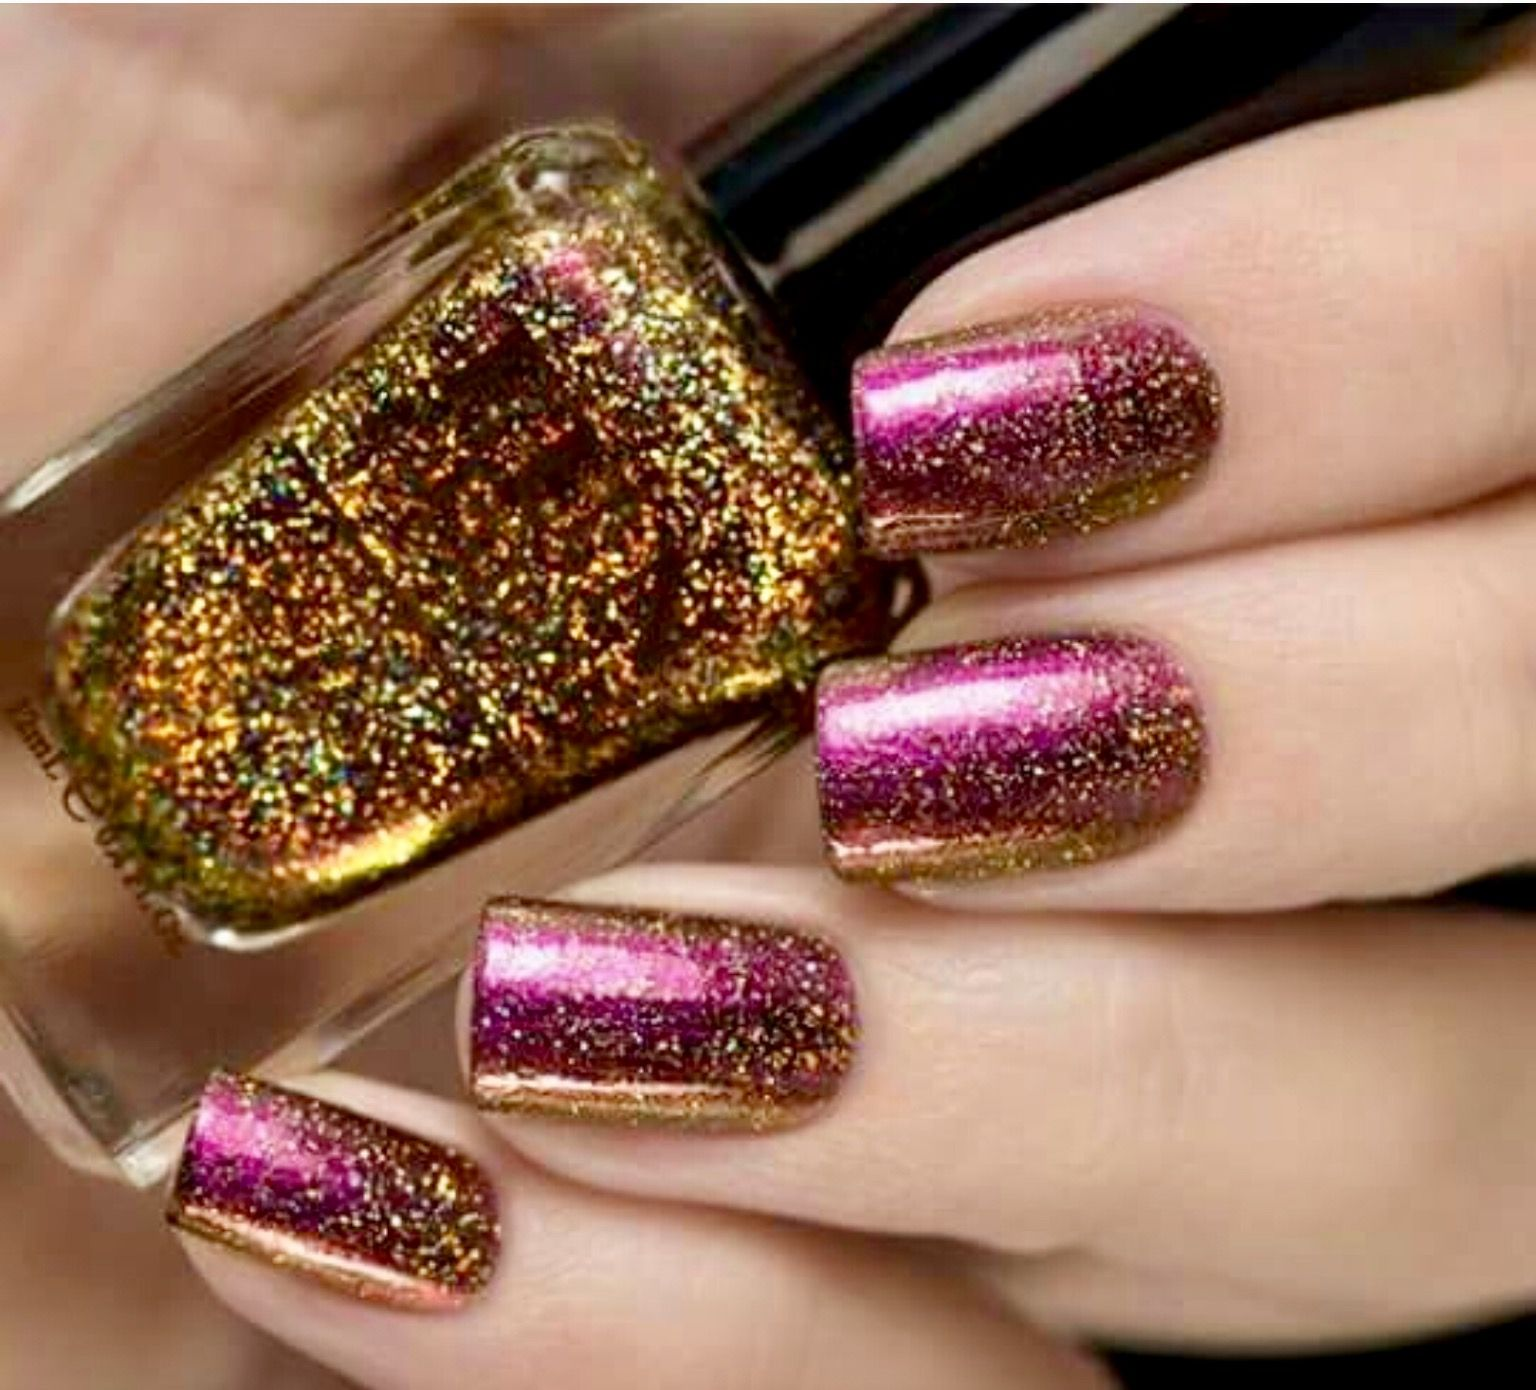 F.U.N. Laquer Unconditional Love | Nails | Pinterest | Nail envy ...